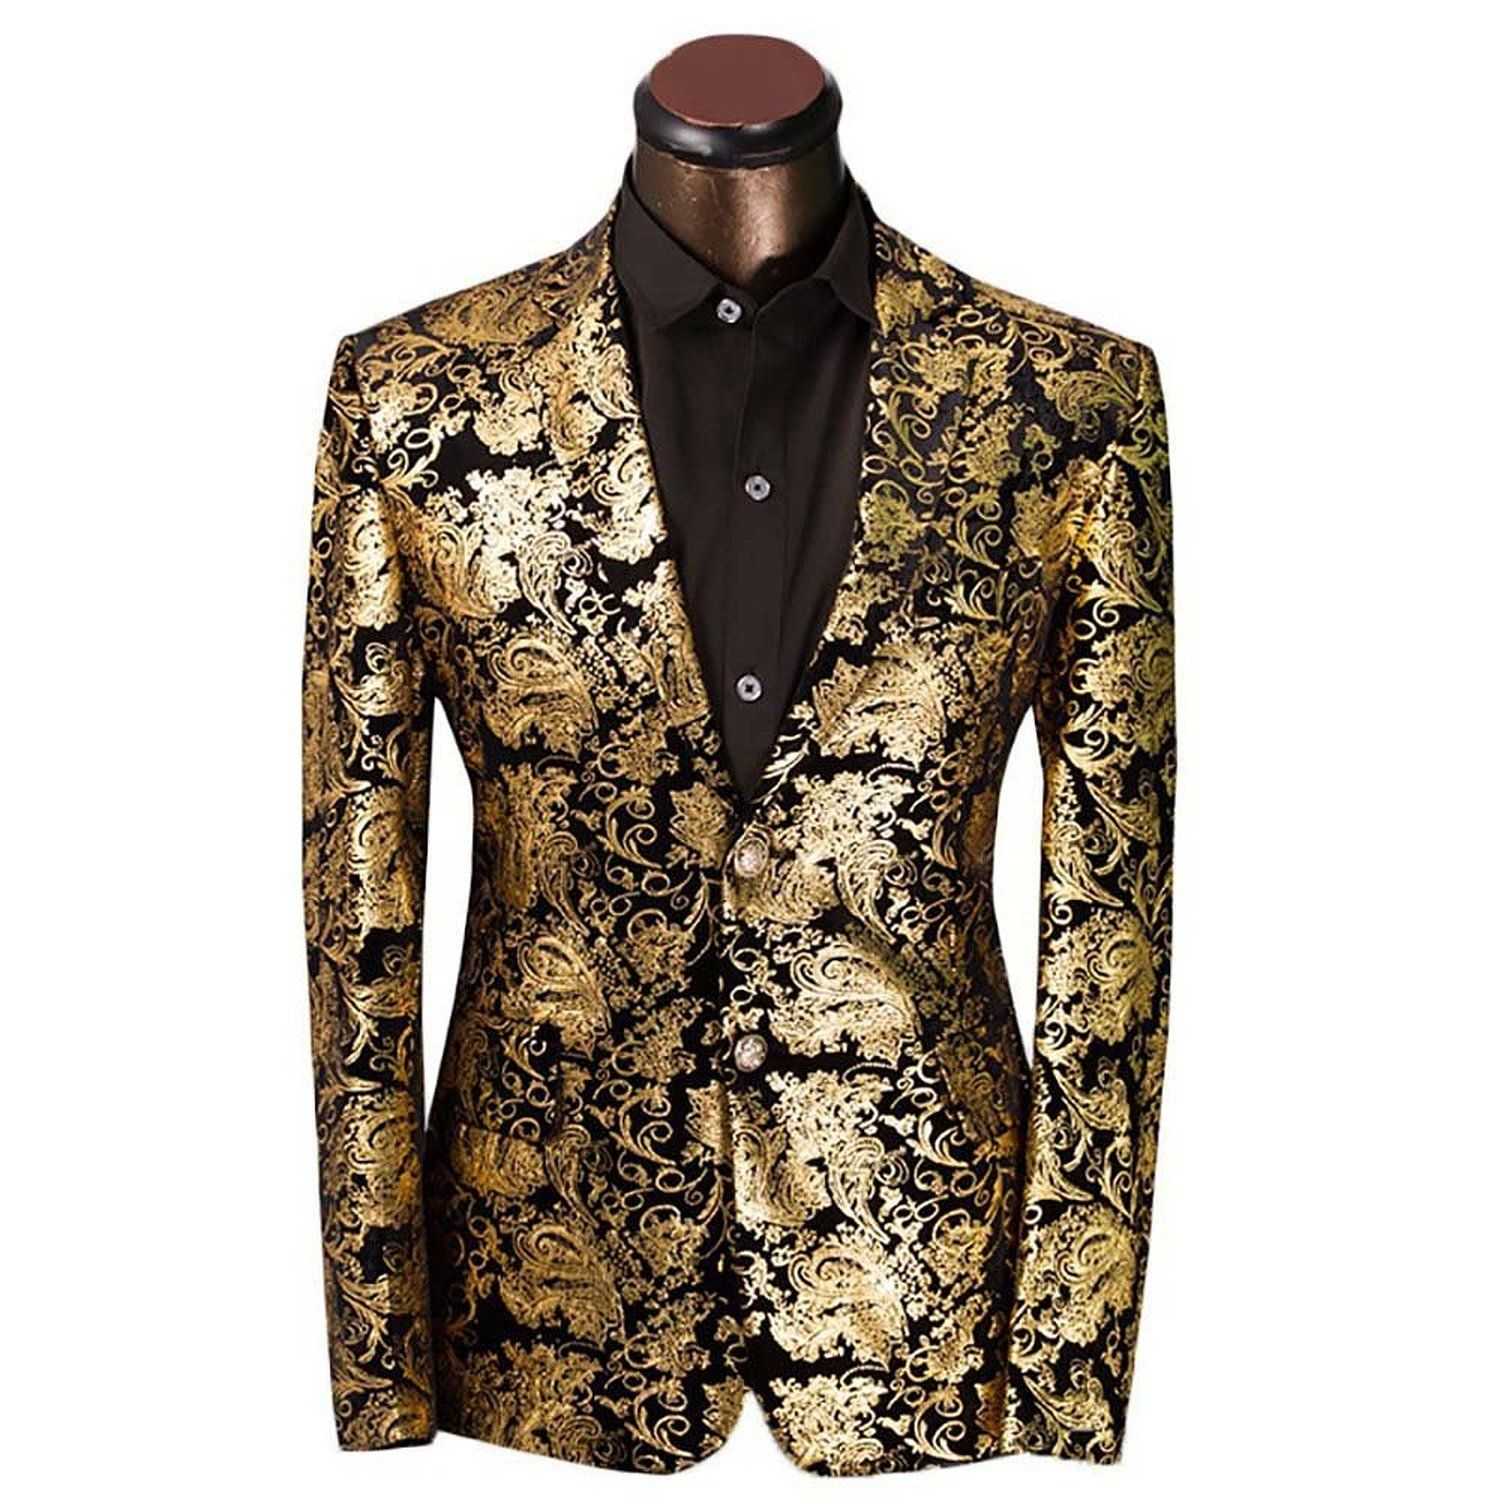 Cloudstyle Gold/Black Blazer | Fashion | Pinterest | Blazers, For ...